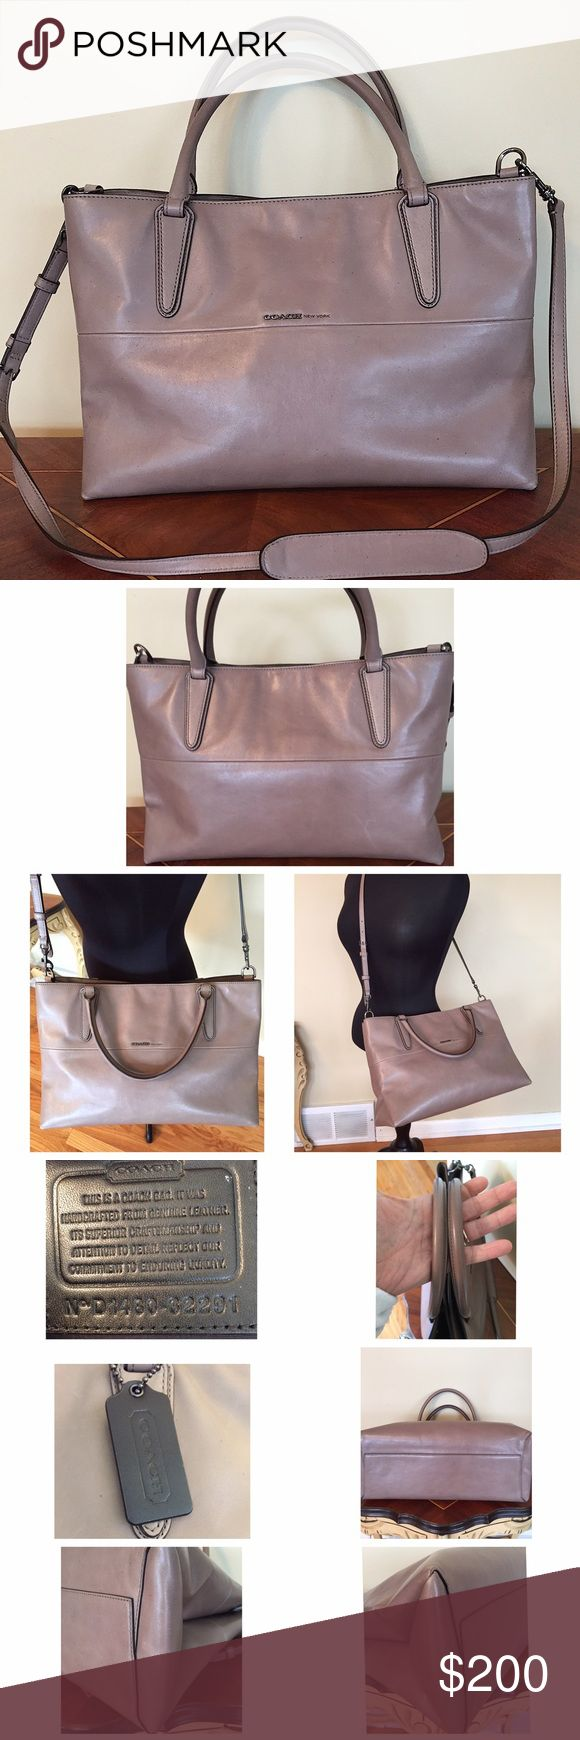 """Authentic Coach Borough Bag With Shoulder Strap Authentic Coach Borough Purse . Earth (Taupe) Gently Used Condition. Retro Glove Leather With Natural Flecks throughout & Creases. Has some wear due softness of leather. See photos. Inside clean. Shoulder strap included. No wear. Measurements appropriately 13 3/4"""" 14""""lol x 9 1/2"""" H x 5 1/2"""" D 4 1/2"""" H & 13 1/2 D Strap. Coach full price item. Sold out. Interior has 3 expandable compartments. Please ask all questions prior to buying. Refer to…"""